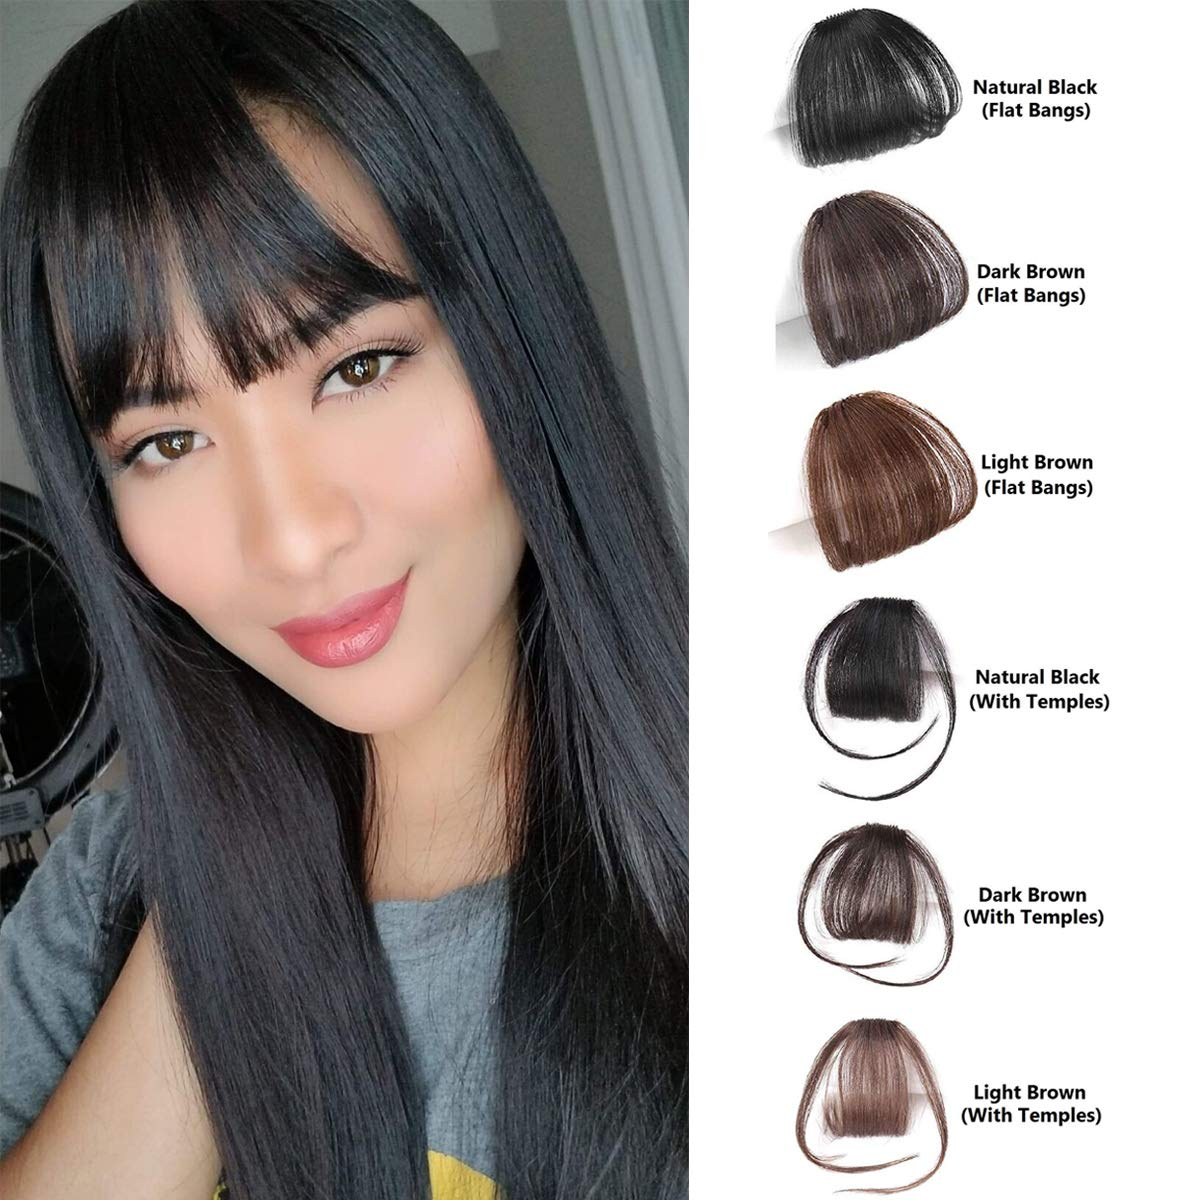 Shinon Natural Real Human Hair Flat Bangs/Fringe Hand Tied MiNi Hair Bangs Fashion Clip-in Hair Extension (Flat Bangs with Temples,Natural Black)